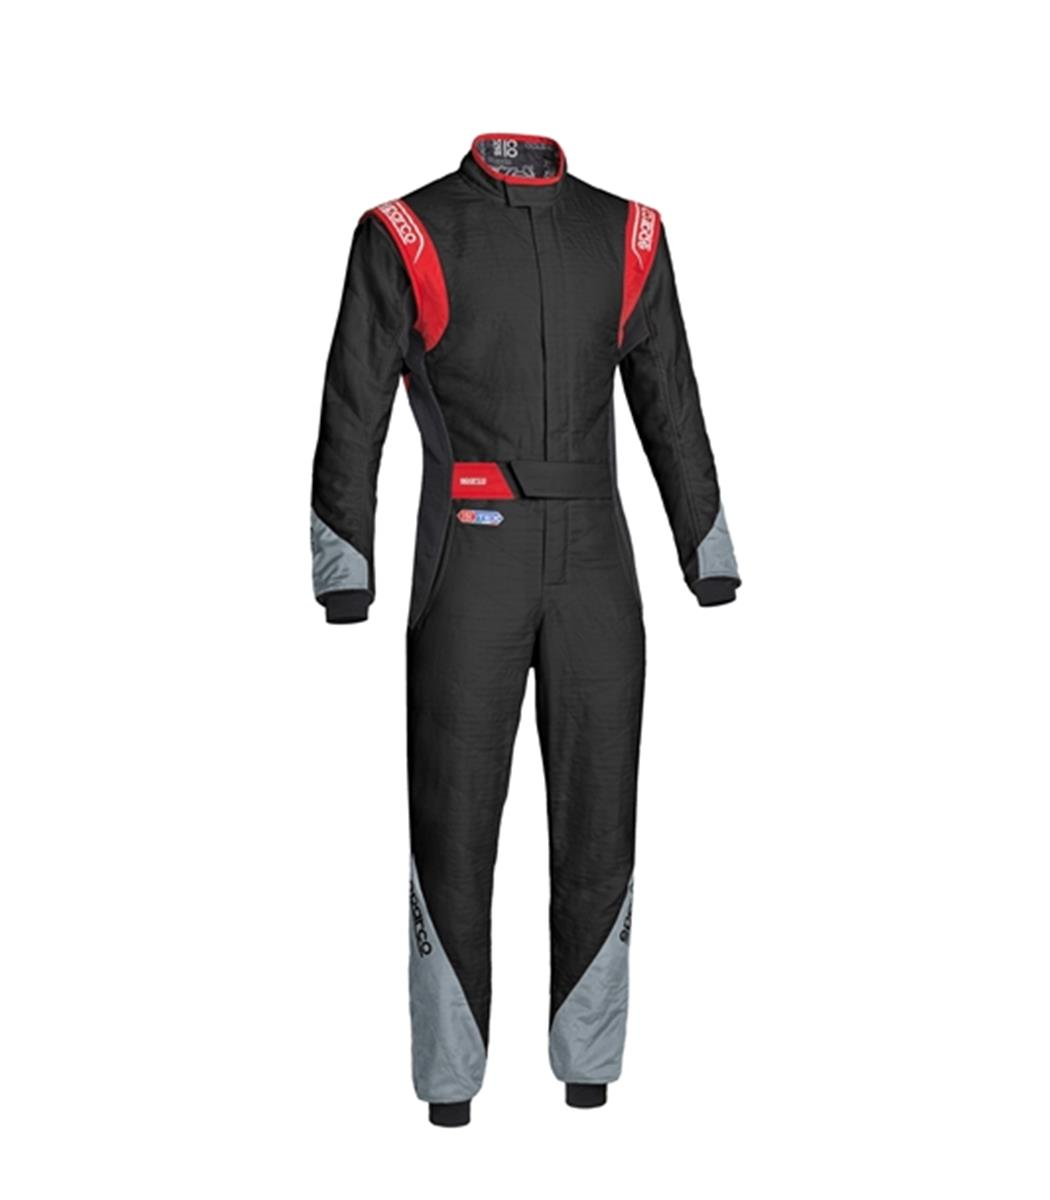 Racing Fire Suits >> Track First Fire Resistant Sfi Fia Certified Racing Suits Sparco Eagle Rs 8 2 Auto Racing Suit